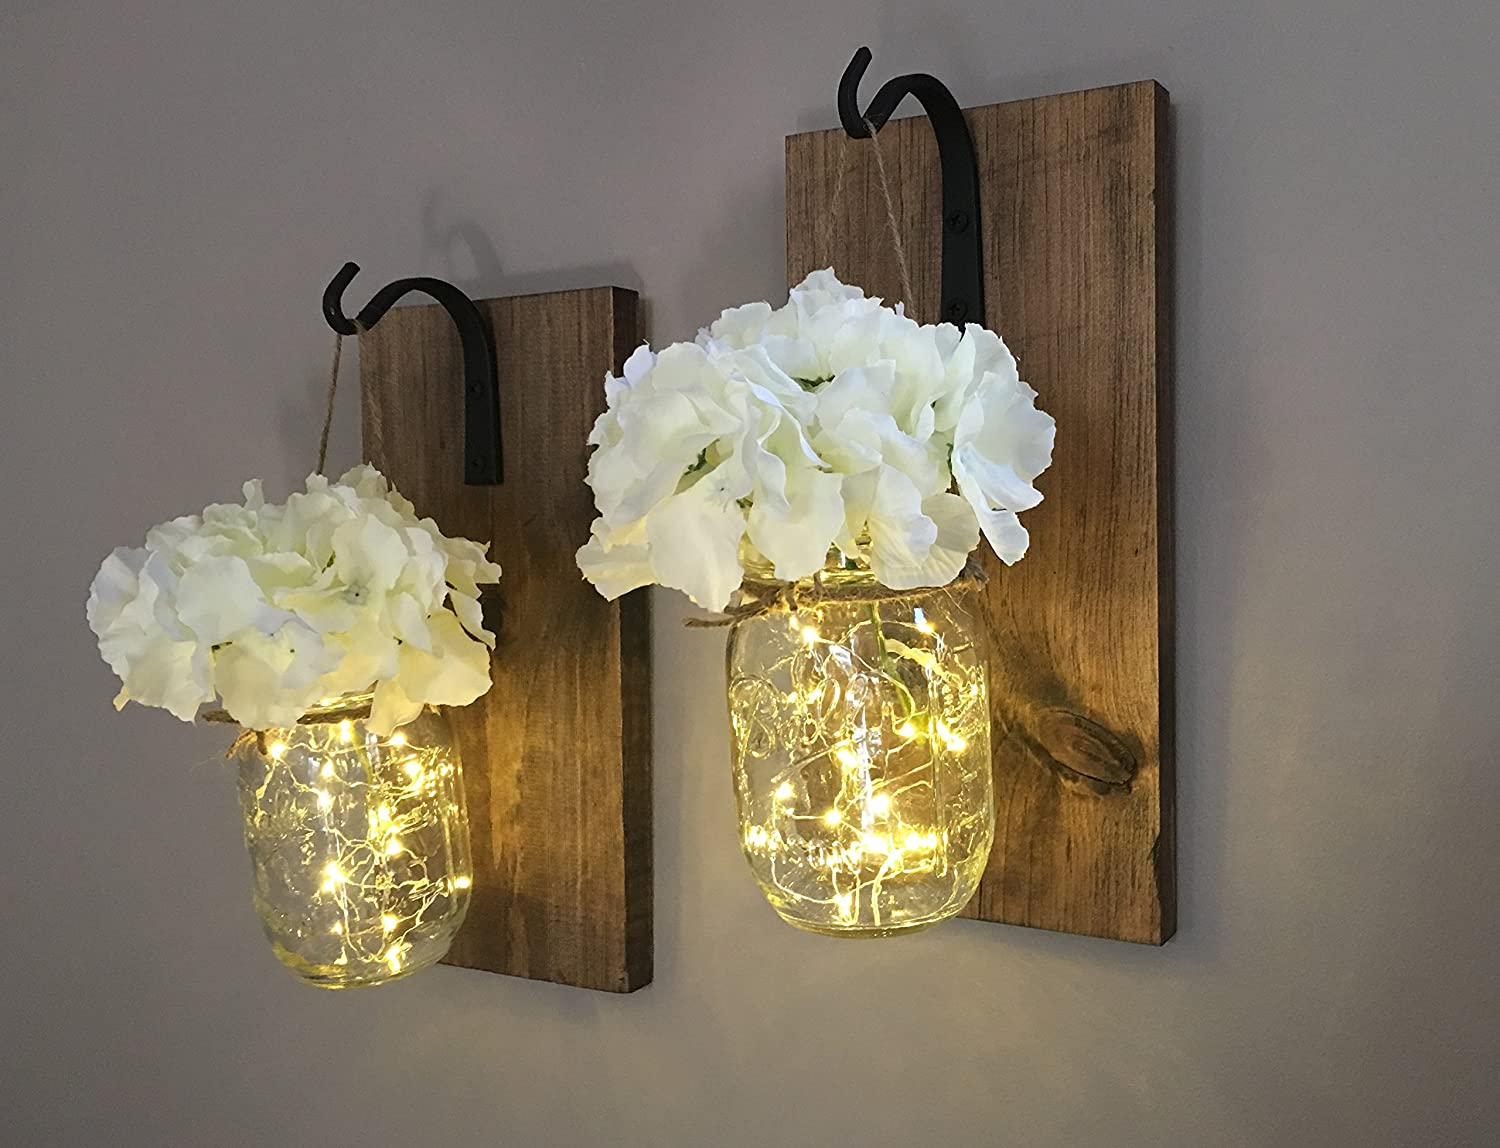 Rustic home decor with mason jar sconces with fairy lights (included)